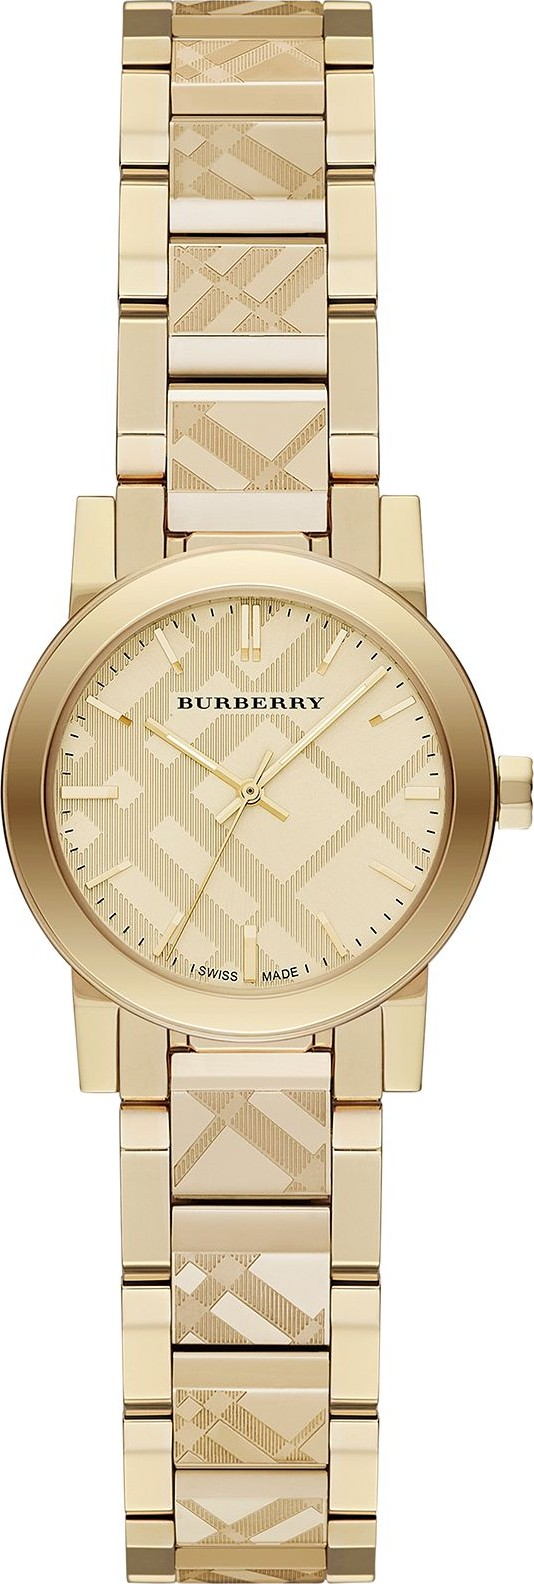 Burberry-Womens-Swiss-Gold-Ion-Plated-Stainless-Steel-Bracelet-BU9234